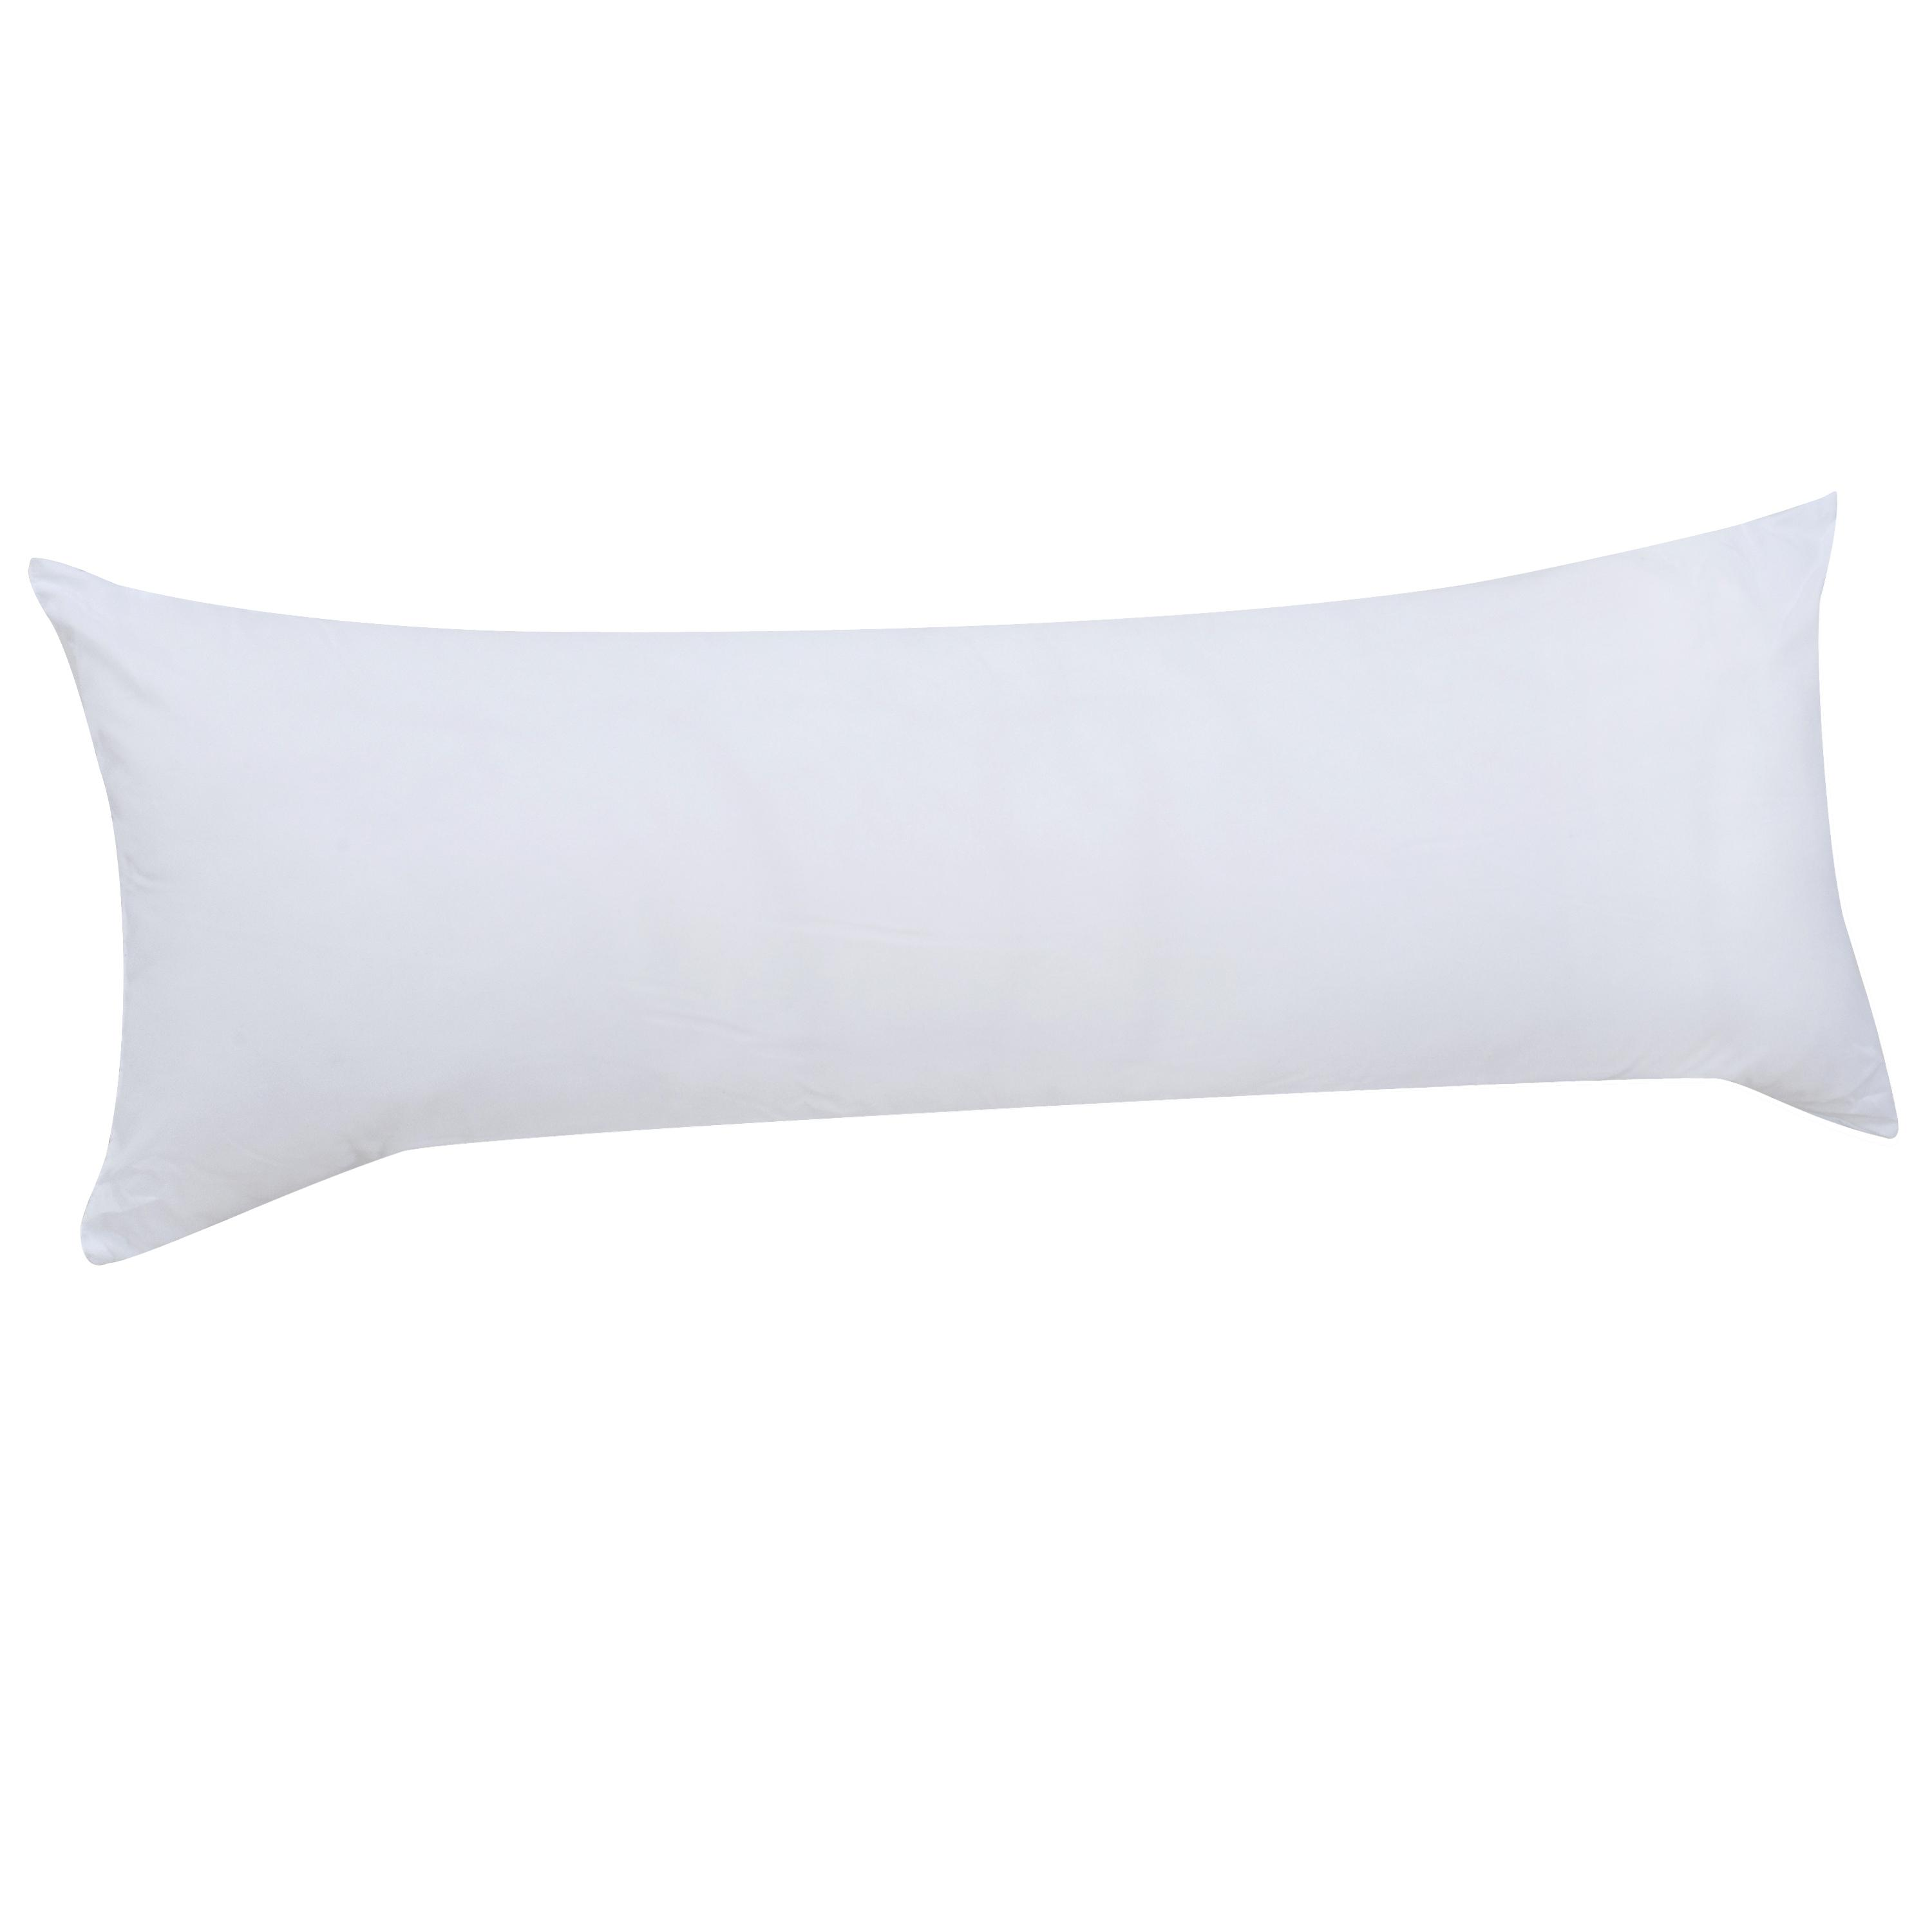 """Mainstays Body Pillow 100% Polyester 20"""" x 54"""" in Multiple Colors by Hollander Sleep Products"""